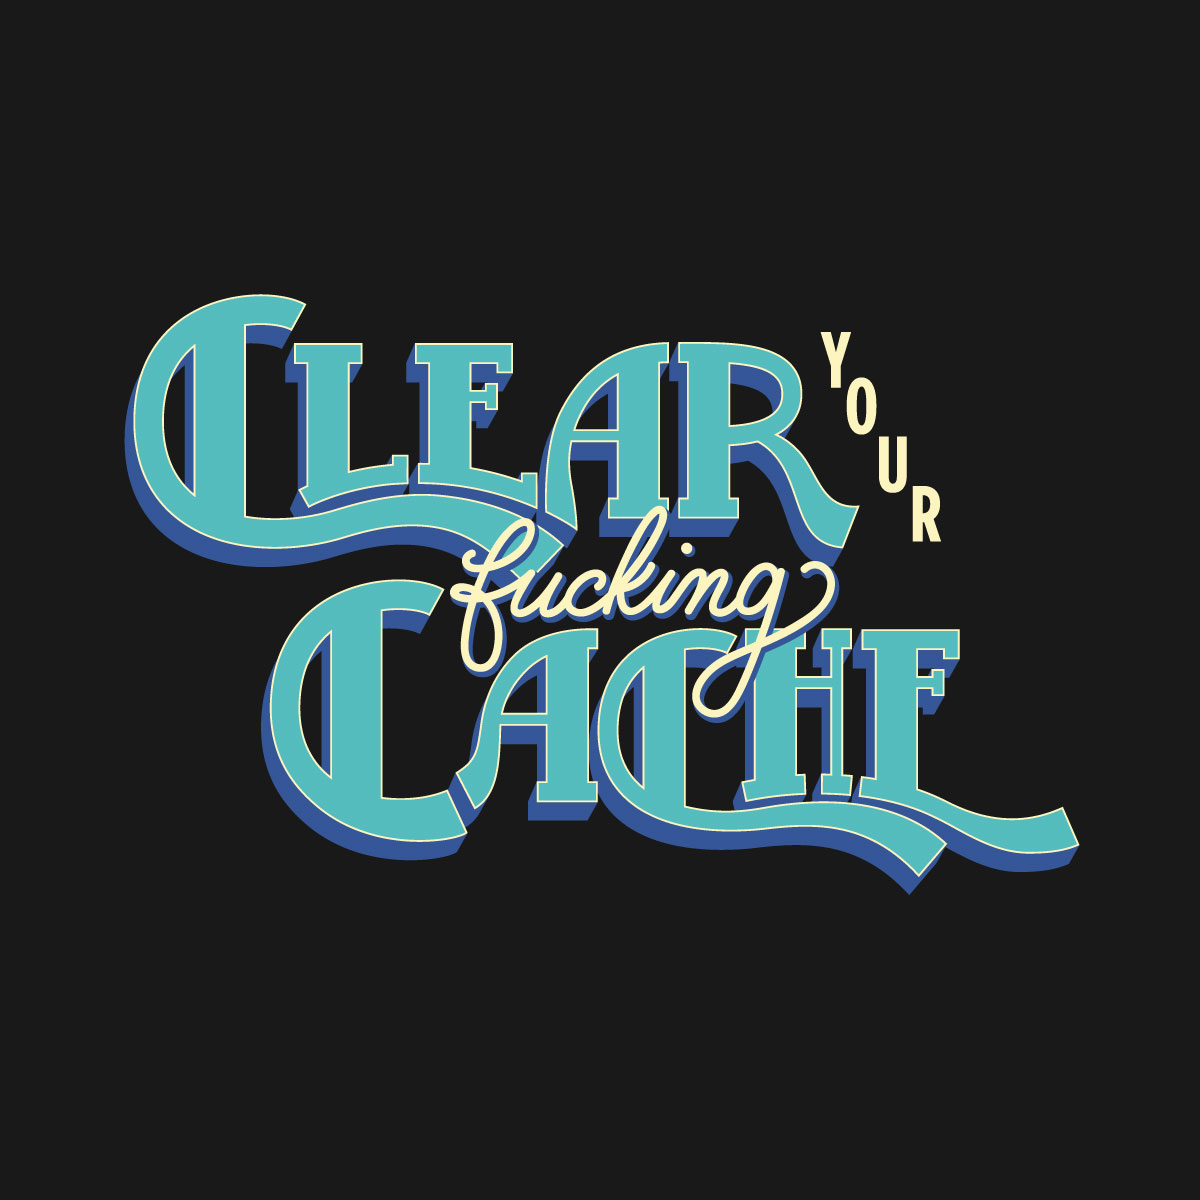 Clear Your Fucking Cache womens shirt